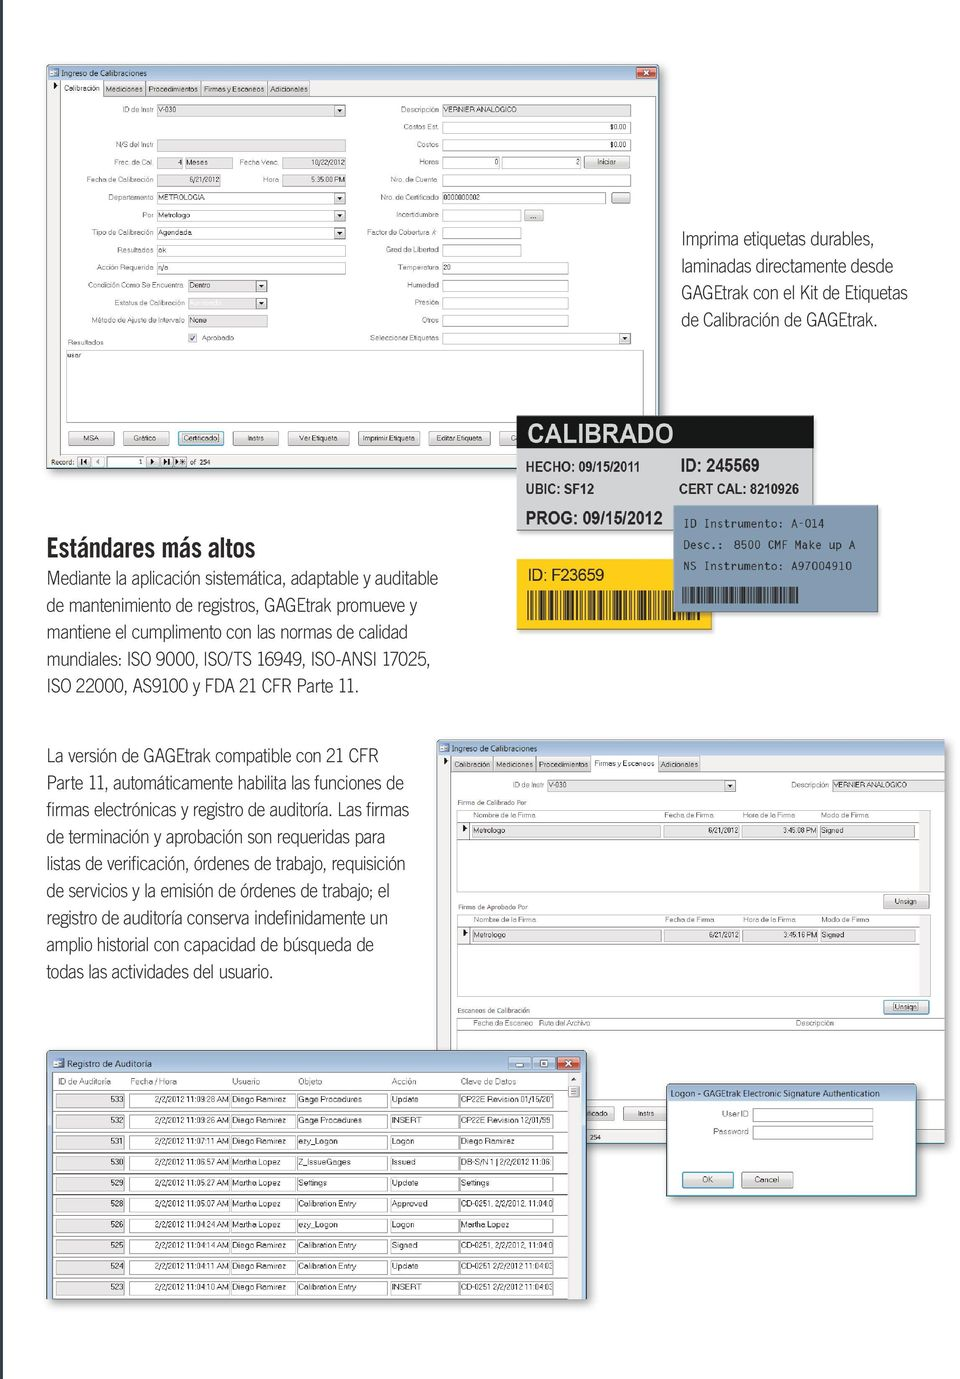 9000, ISO/TS 16949, ISO-ANSI 17025, ISO 22000, AS9100 y FDA 21 CFR Parte 11.